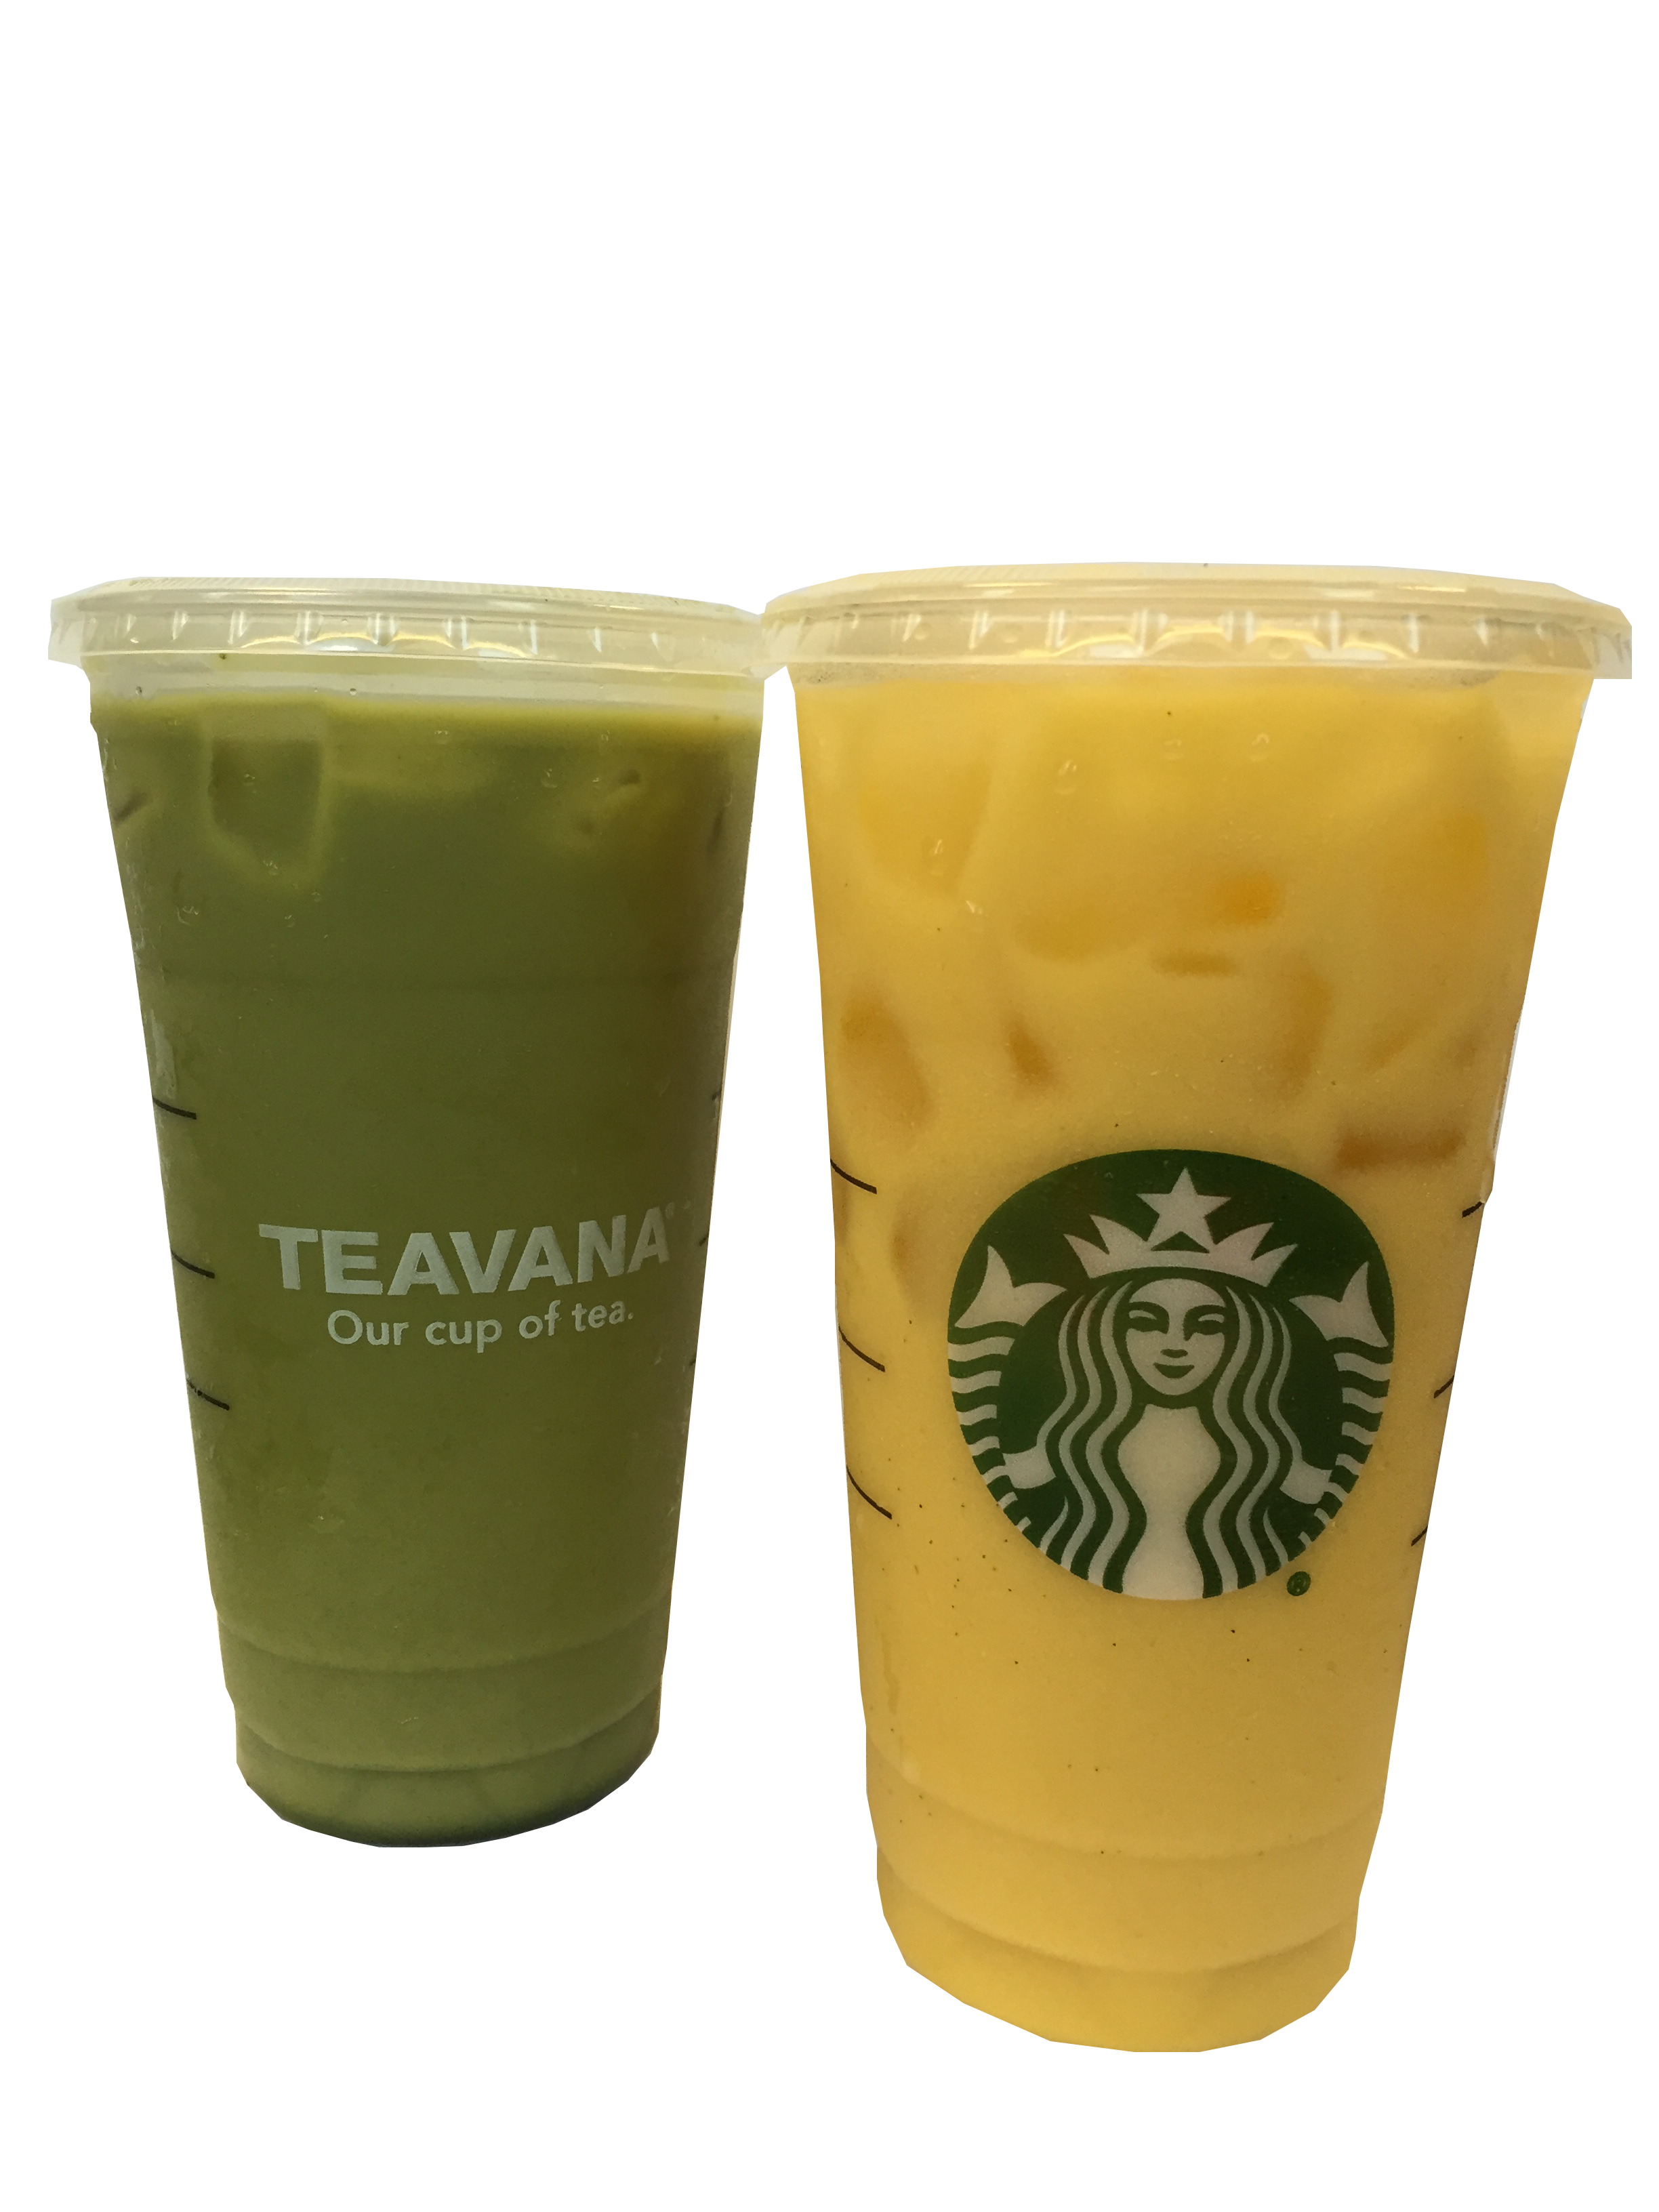 starbucks-orange-drink-green-drink